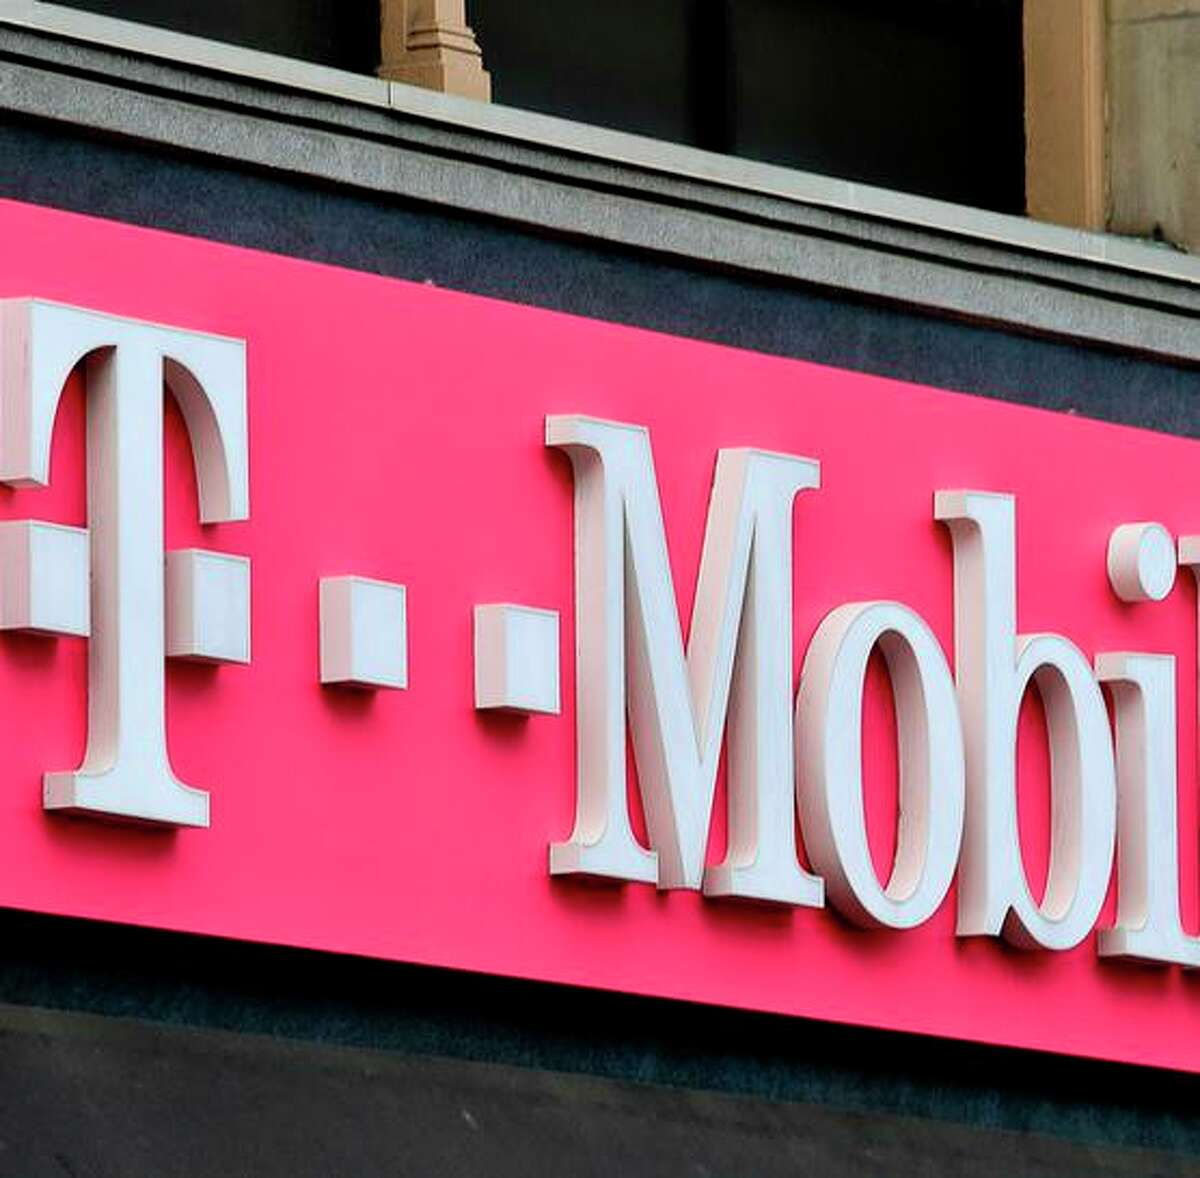 T-Mobile proved well suited for the Salinas Valley town's needs.